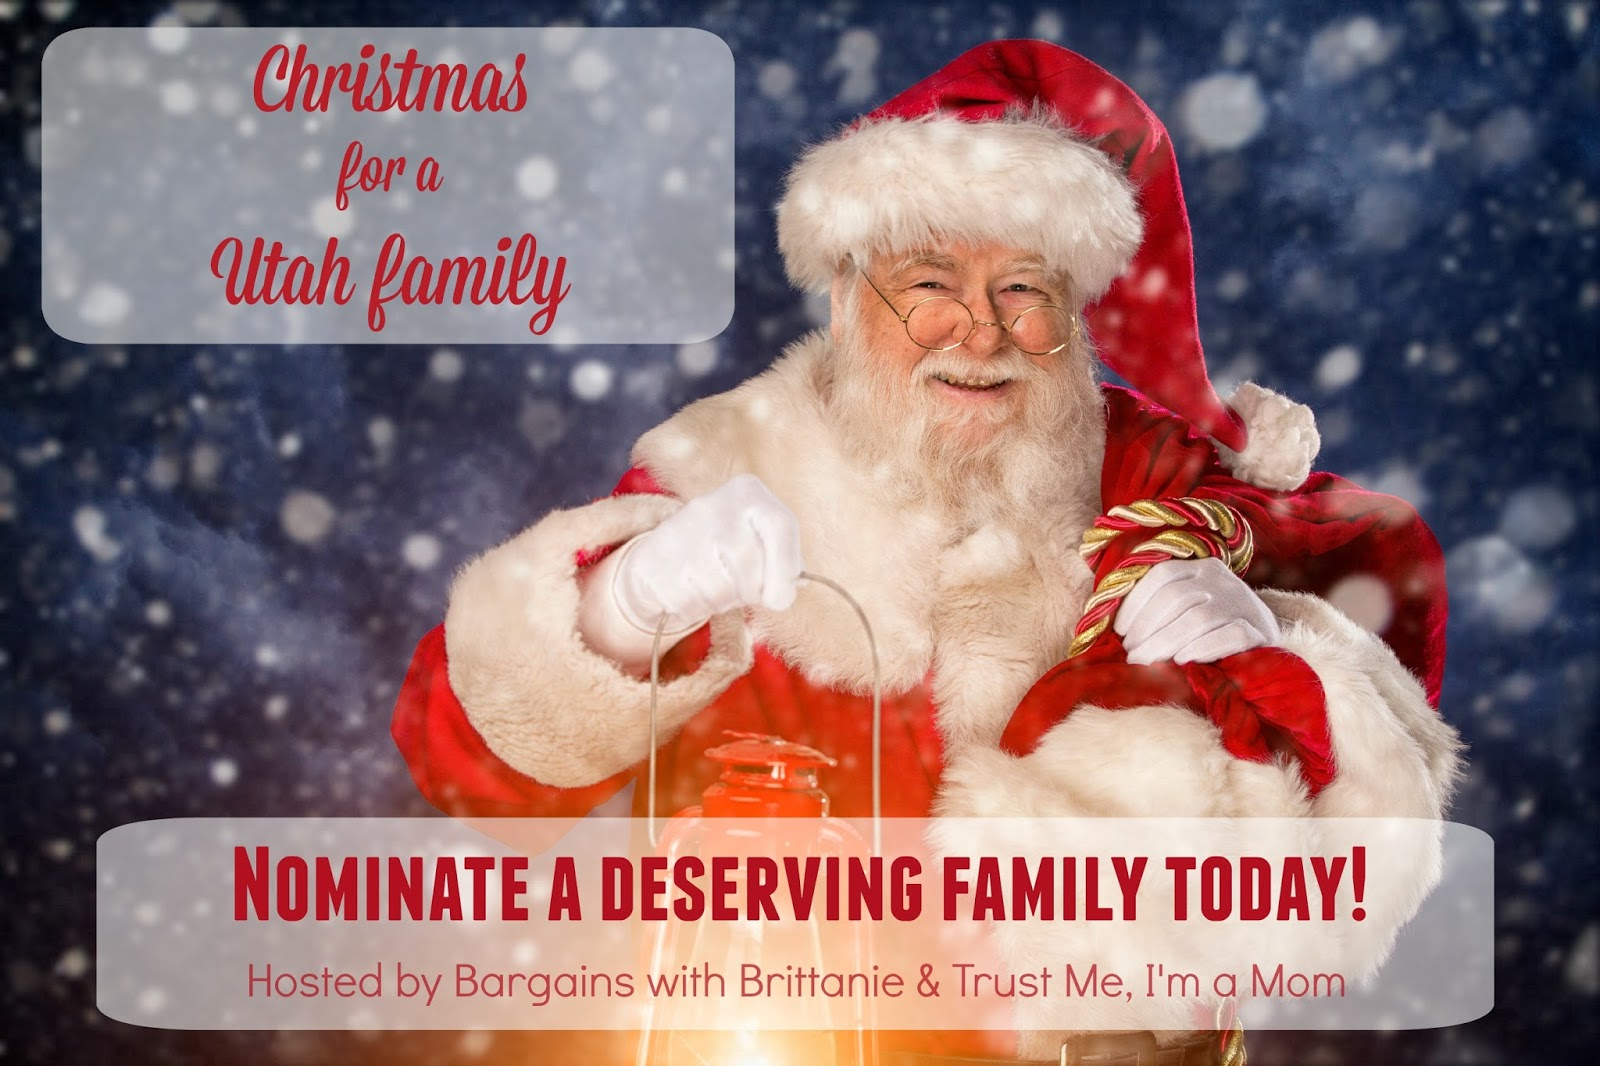 Christmas for a Utah Family Nominations